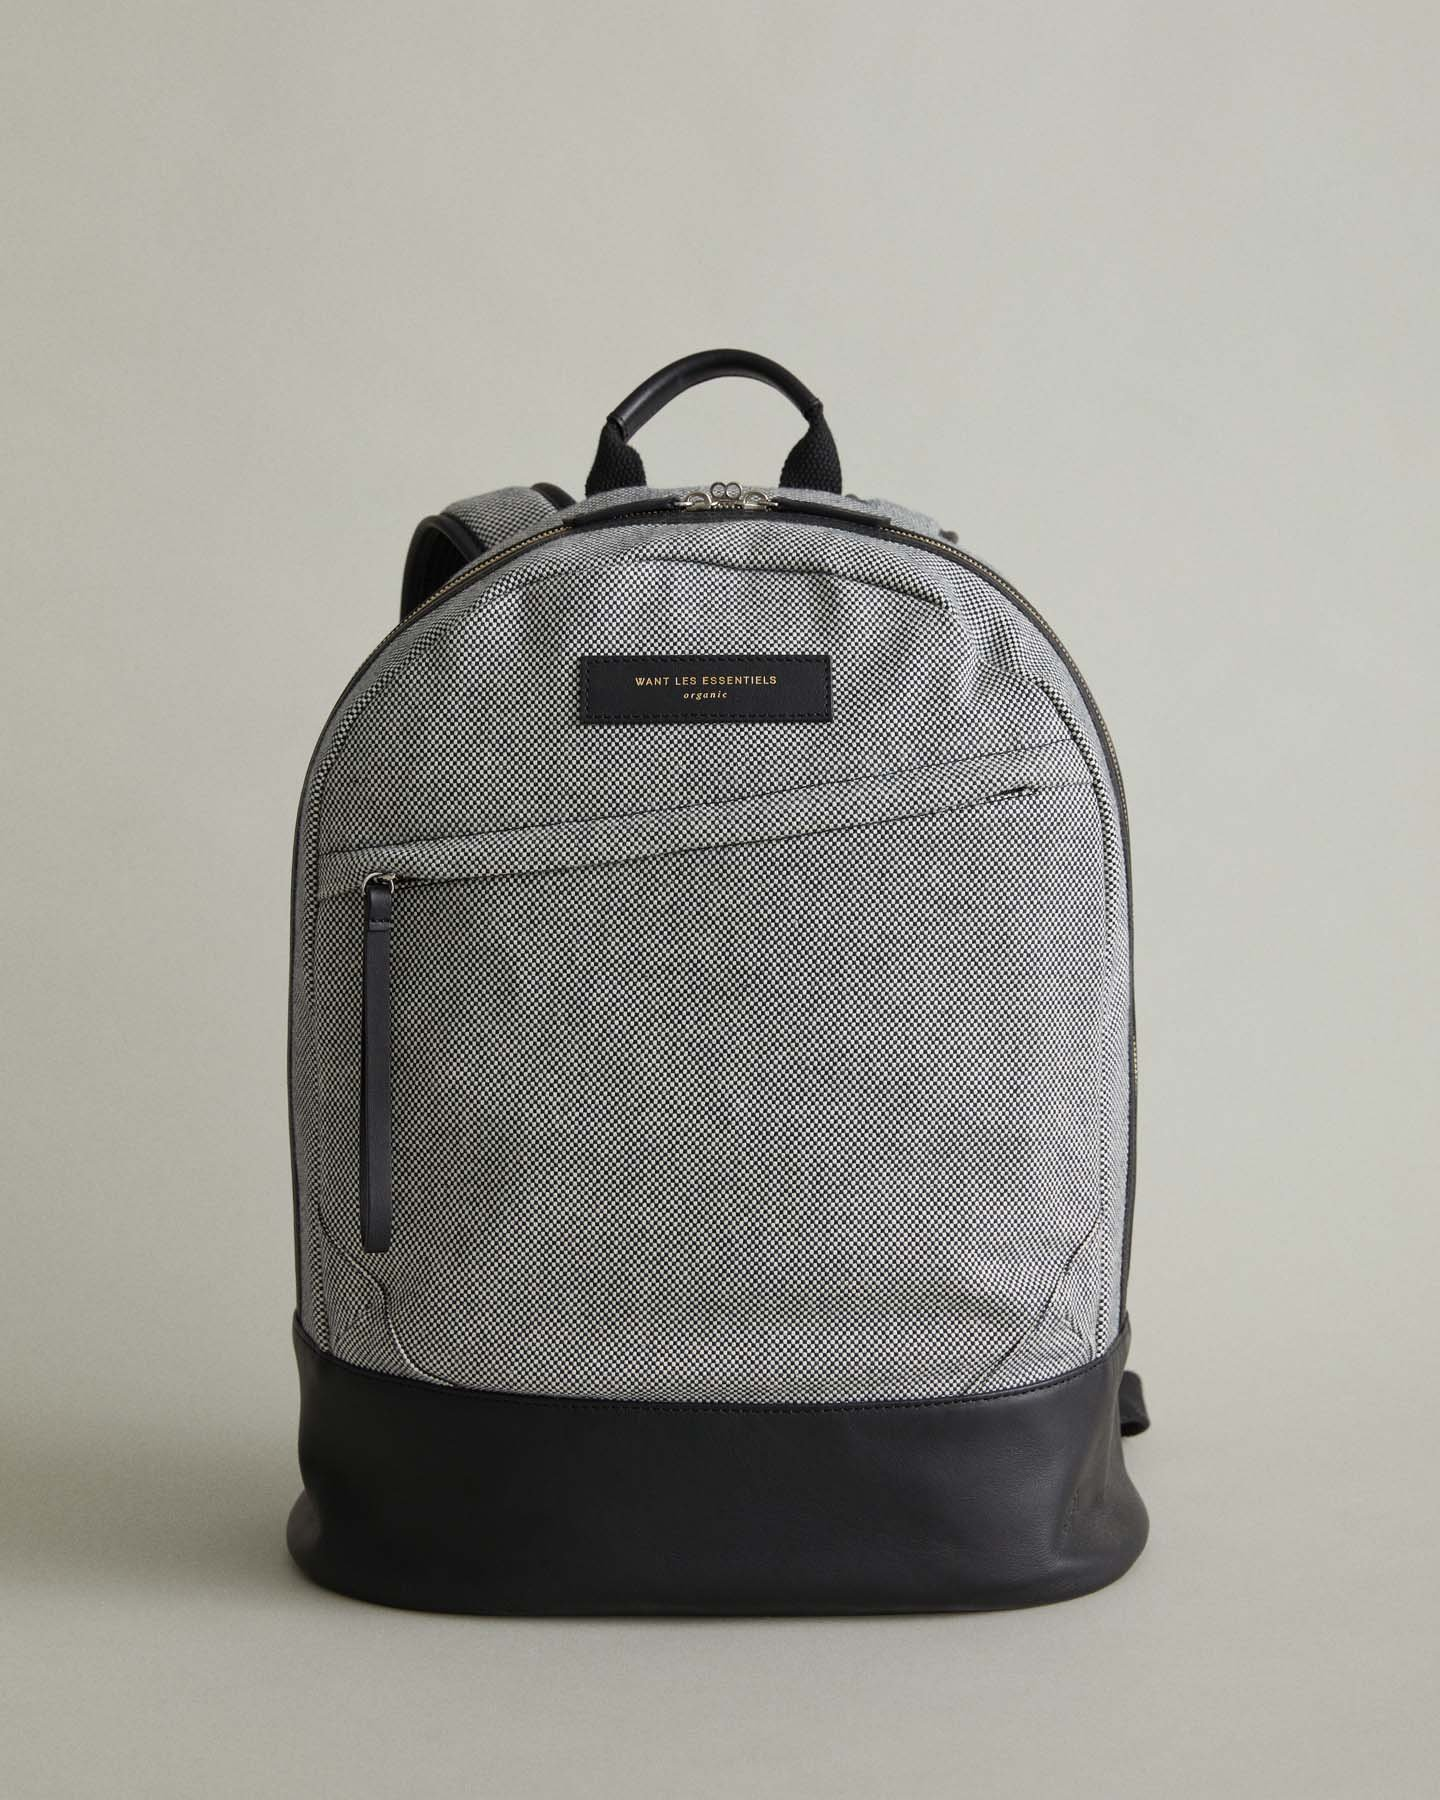 $270 - Want Les Essentiels cotton backpack   A modern backpack that says your not in school anymore. The leather detailing on this bag is also amazing. Sure to turn heads at work!